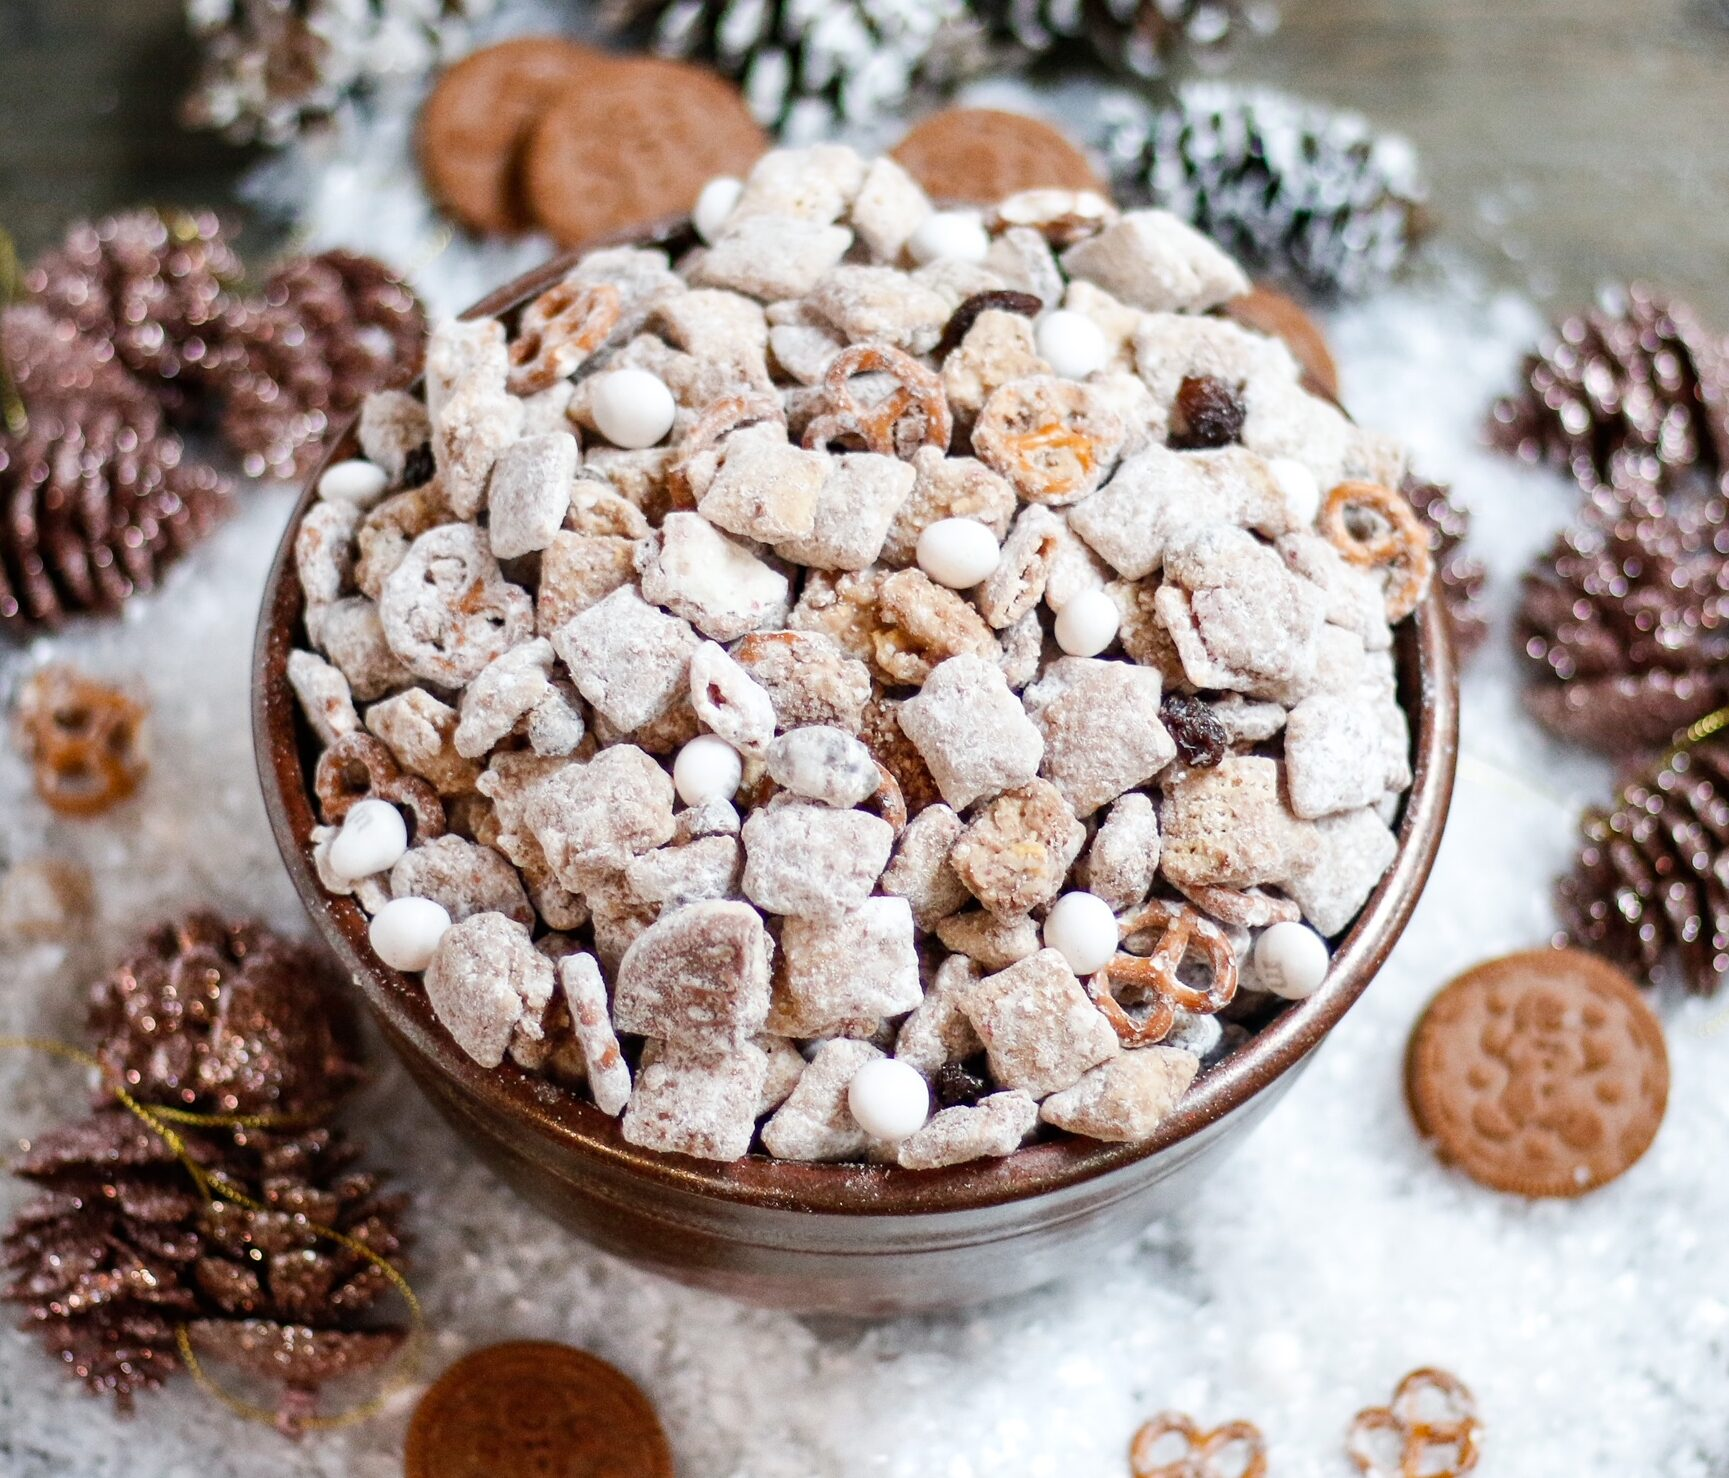 gingerbread puppy chow, puppy chow, christmas puppy chow, cookie butter puppy chow, oreo puppy chow, gingerbread oreo puppy chow